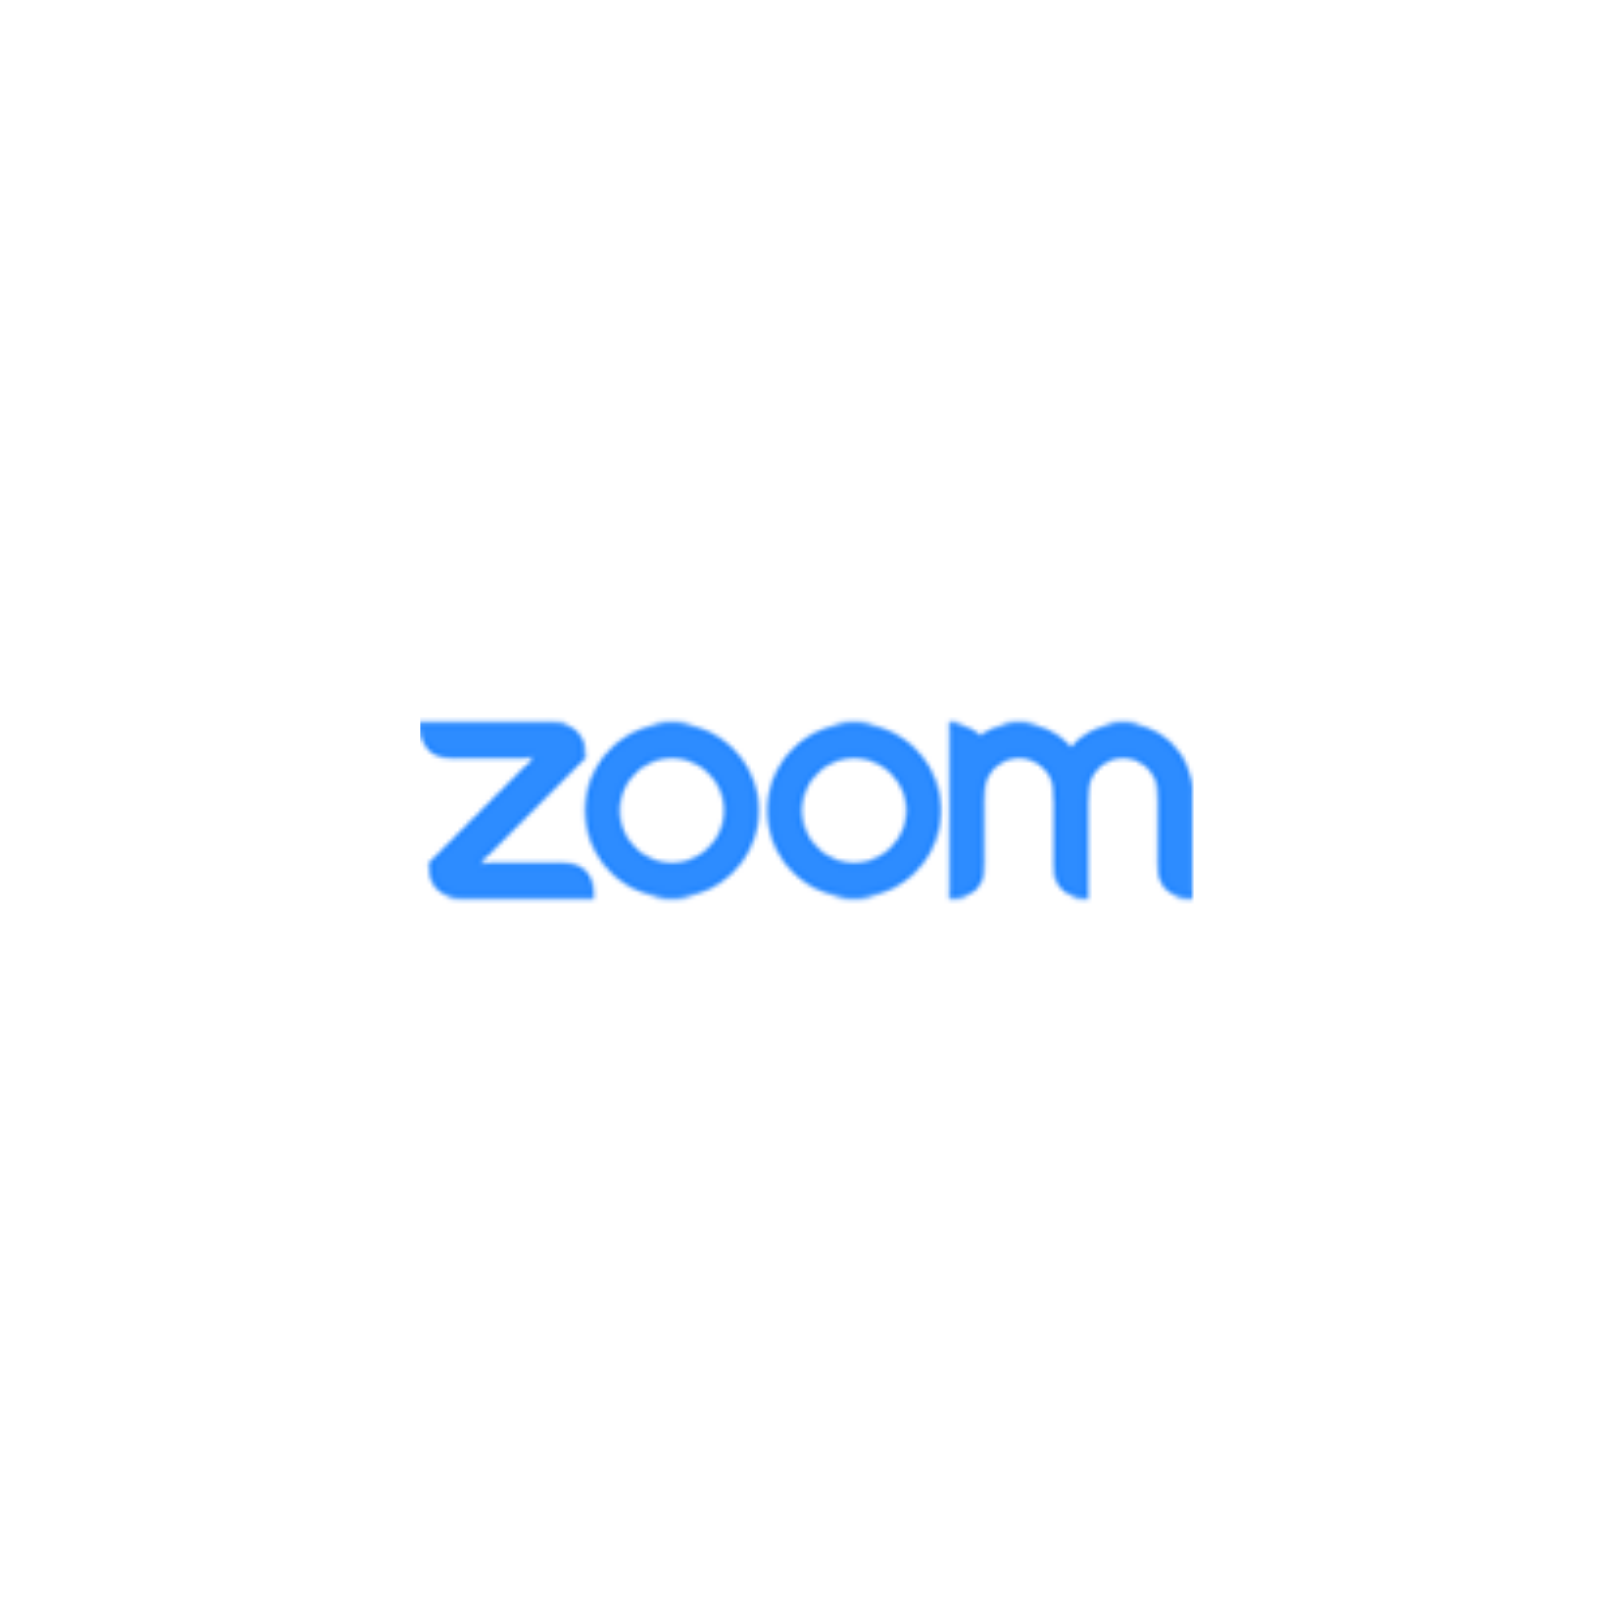 Zoom TechSoup